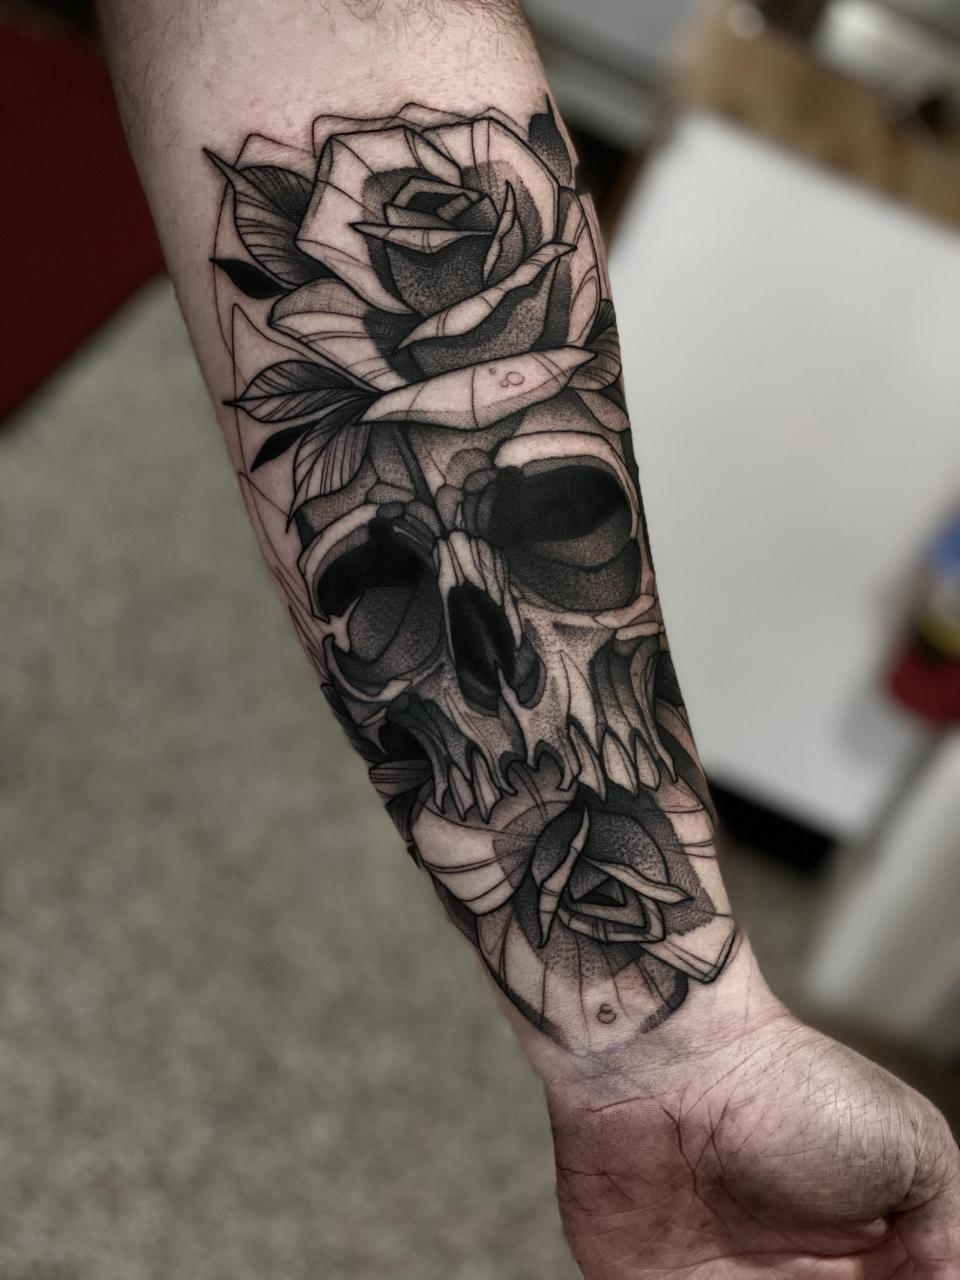 Skull and roses forearm piece done by Max LaCroix at Akara Arts in Milwaukee, WI